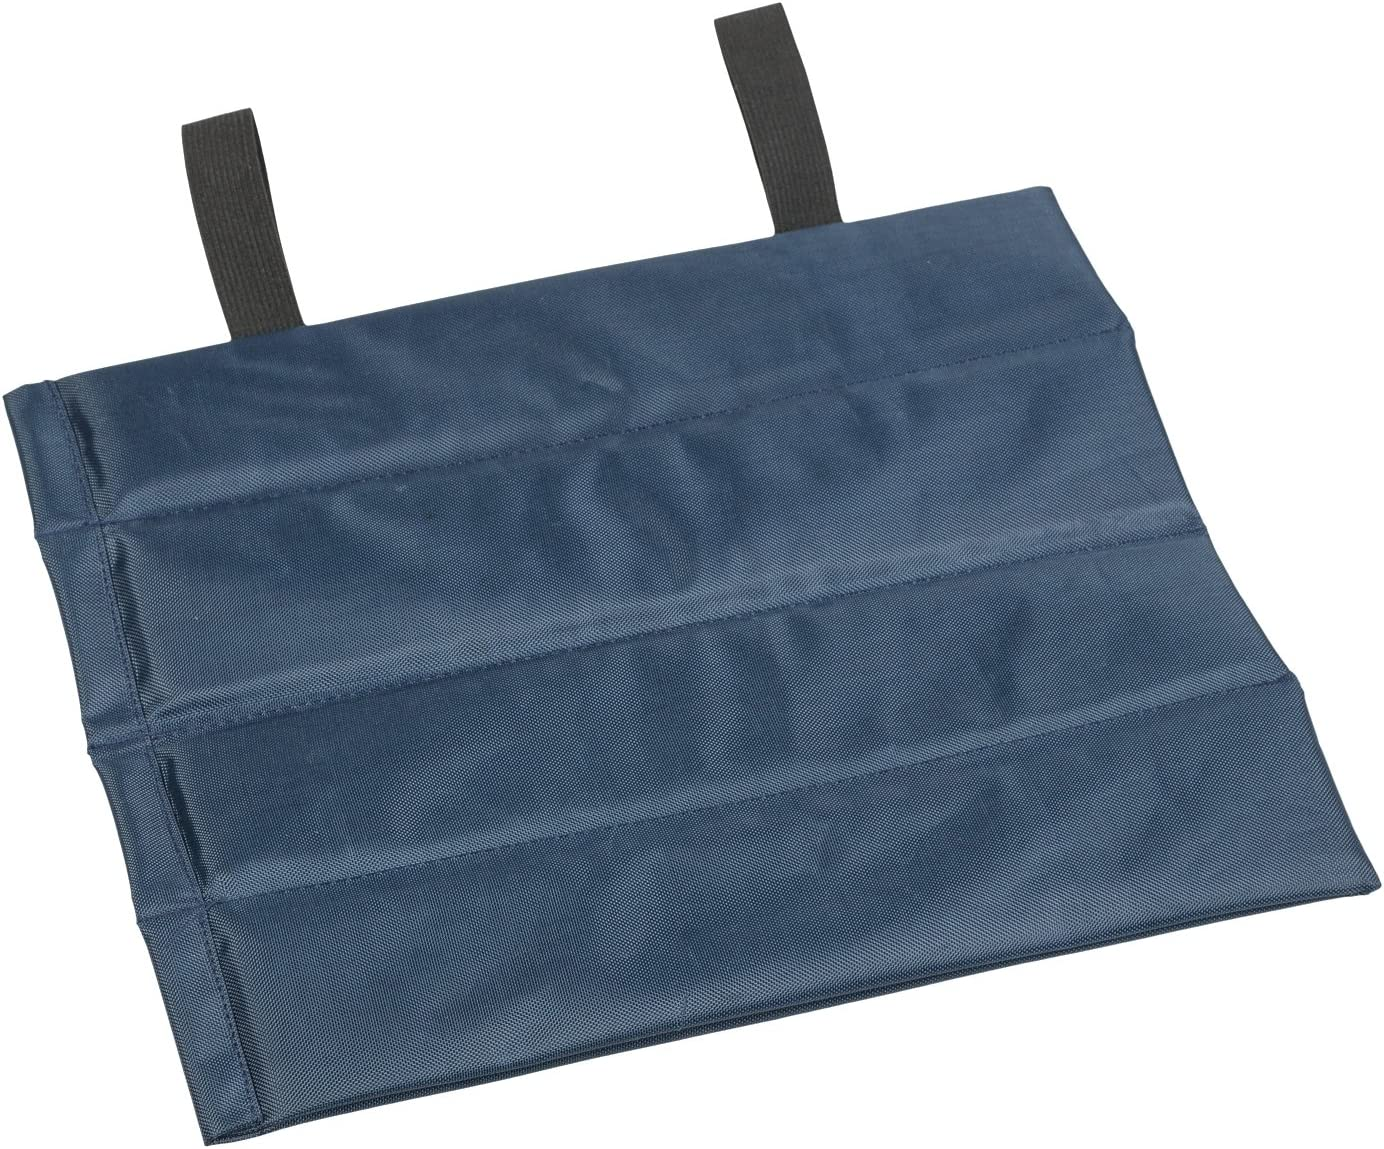 Idena Seat Financial sales Trust sale Cushion and Pads Blue Keine